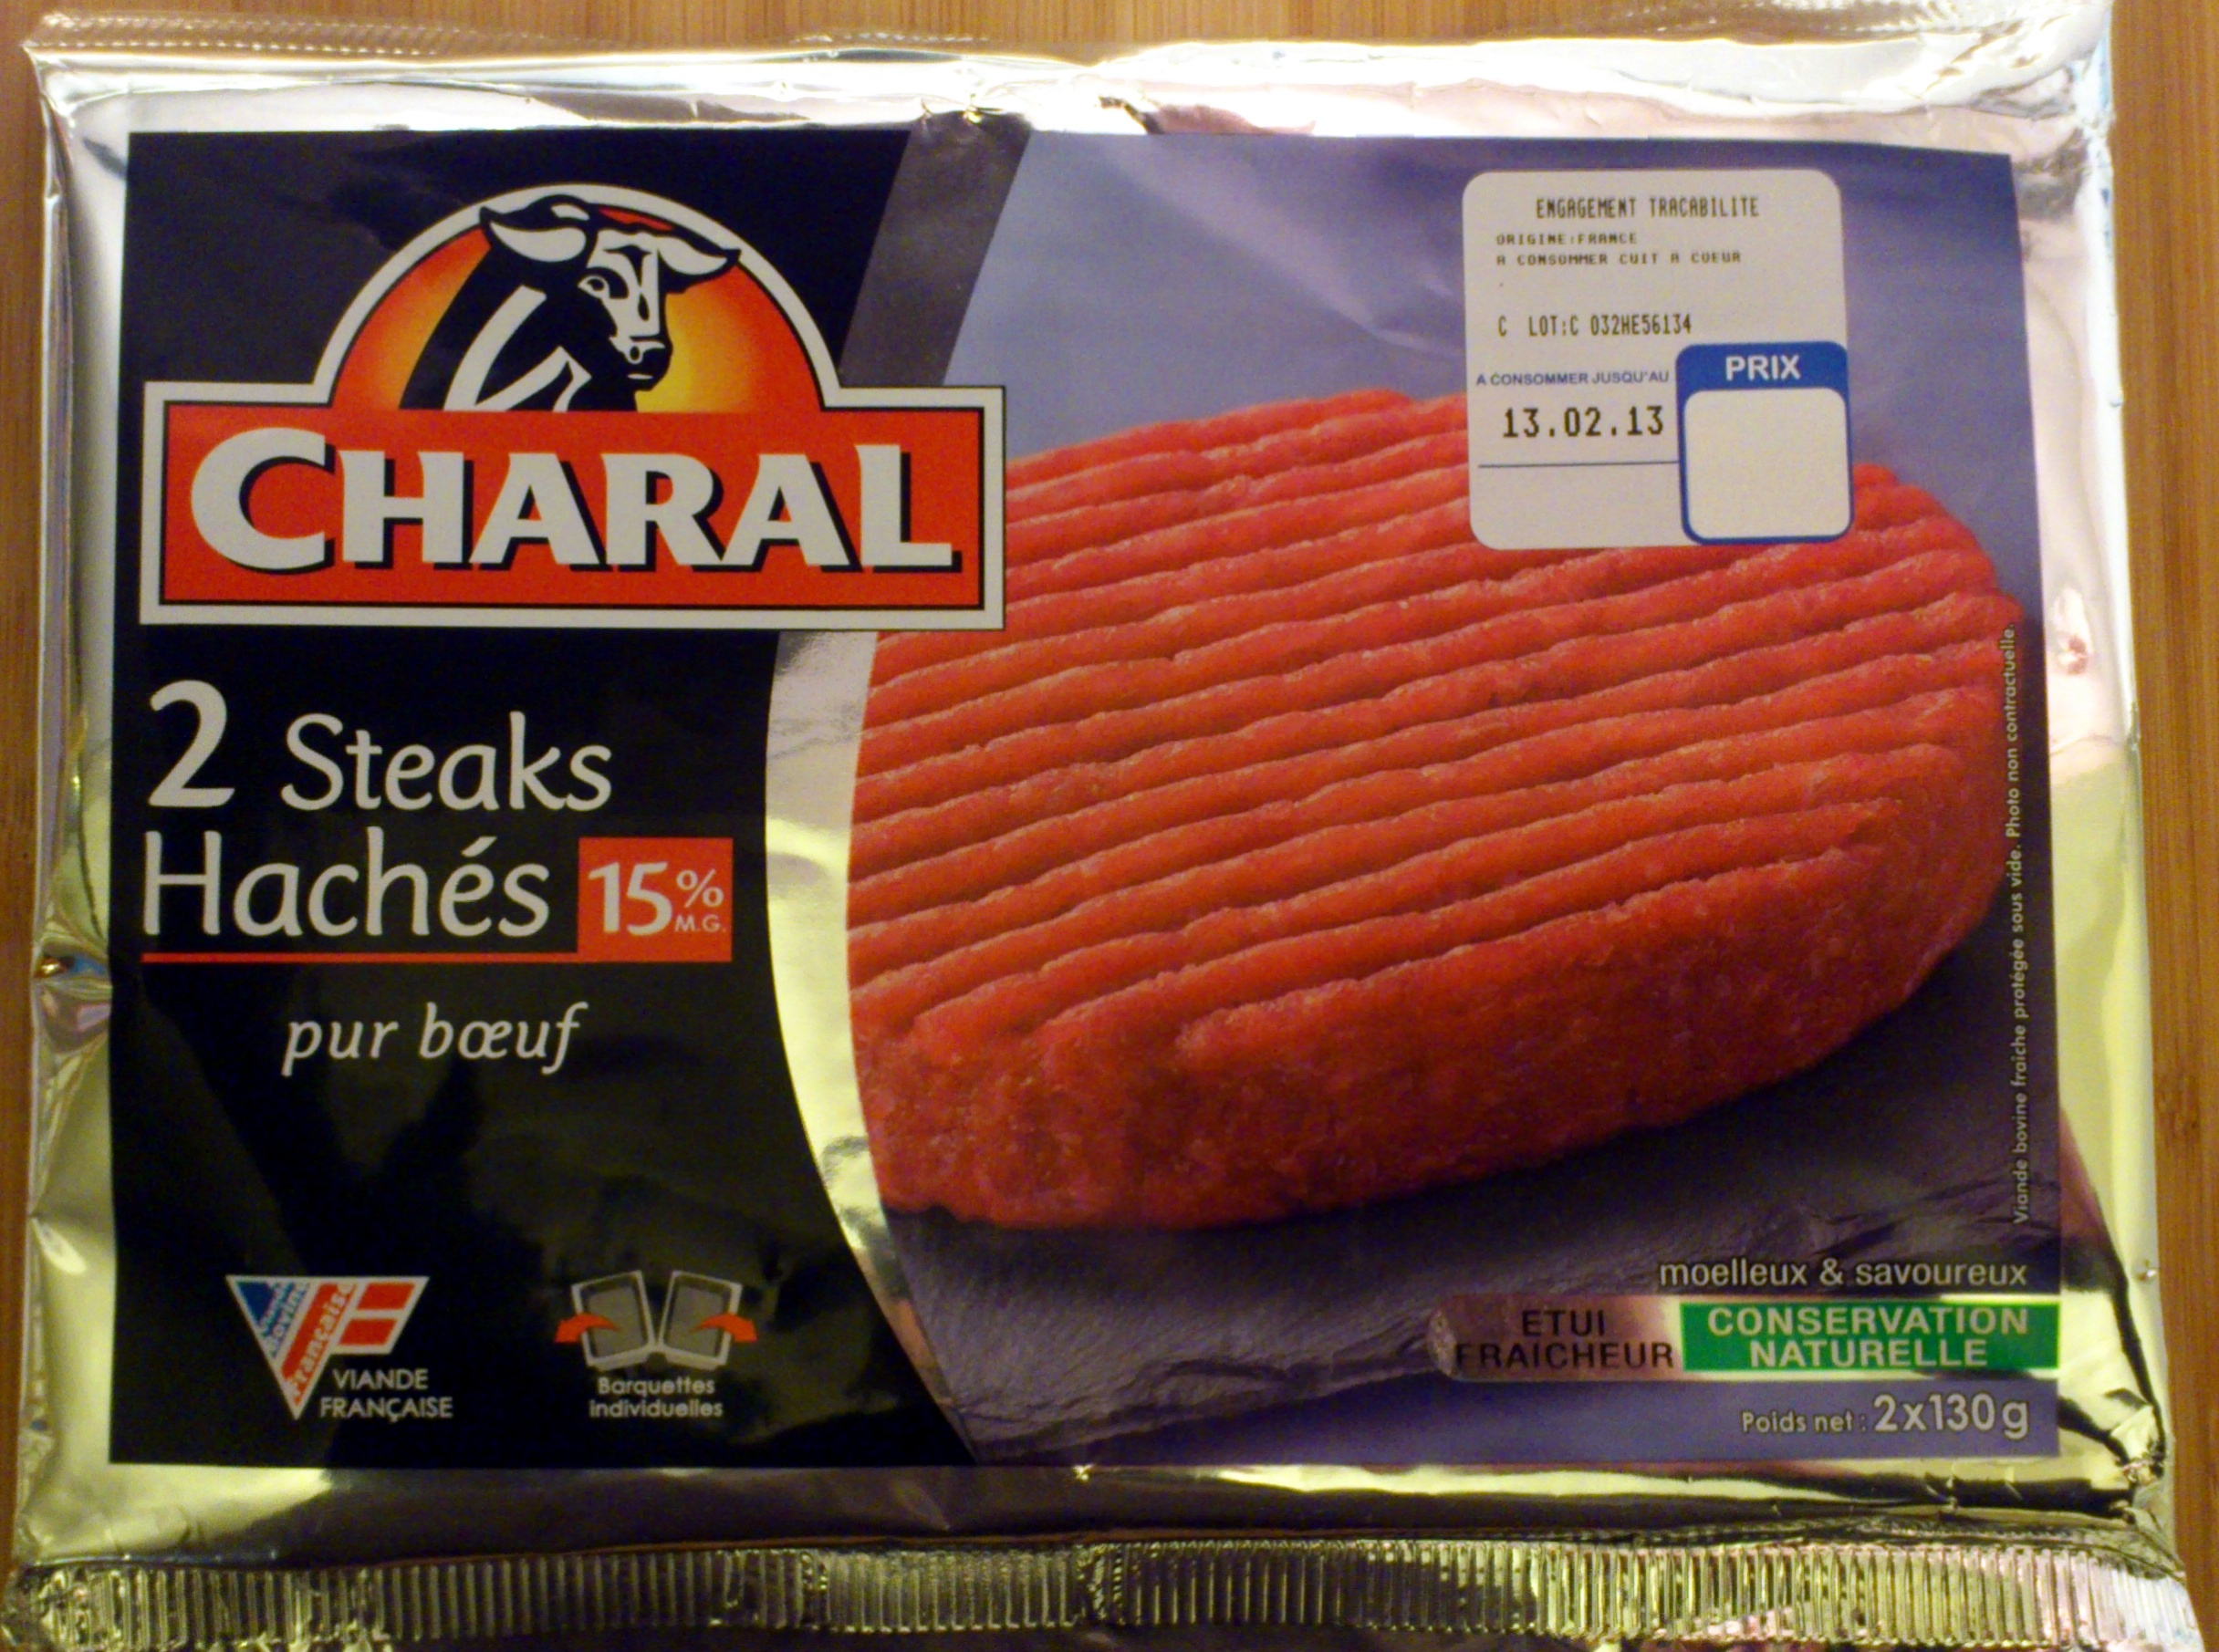 2 Steak Hachés 15% MG - Product